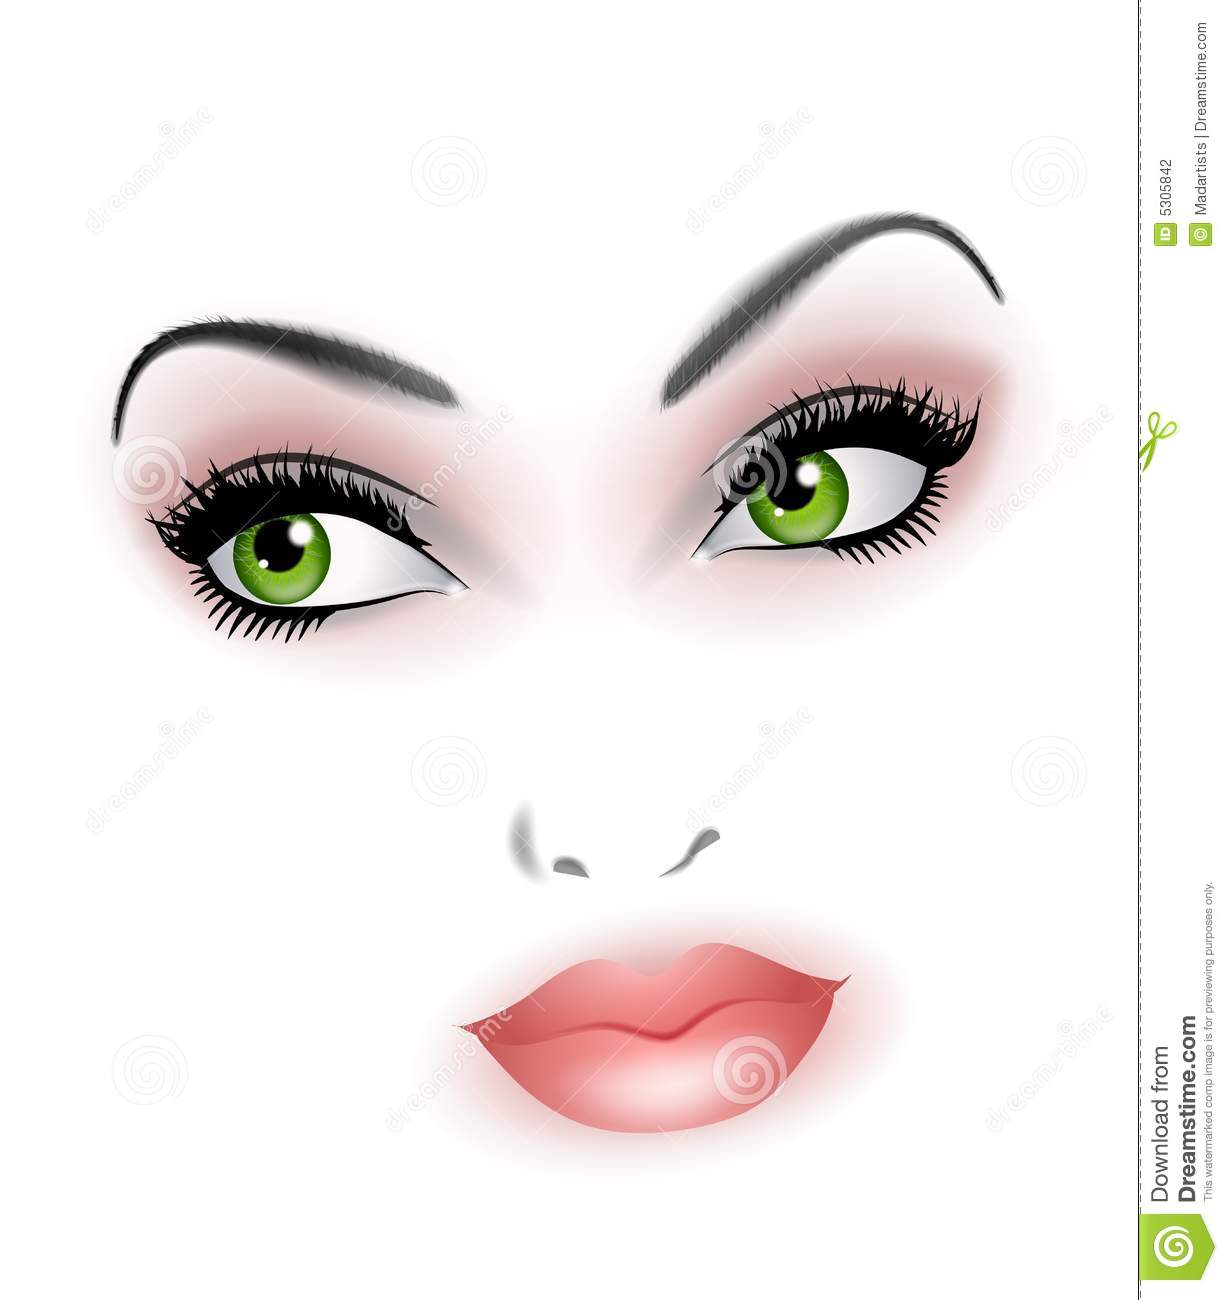 Clip Art Illustration Featuring The Facial Features Of A Beautiful